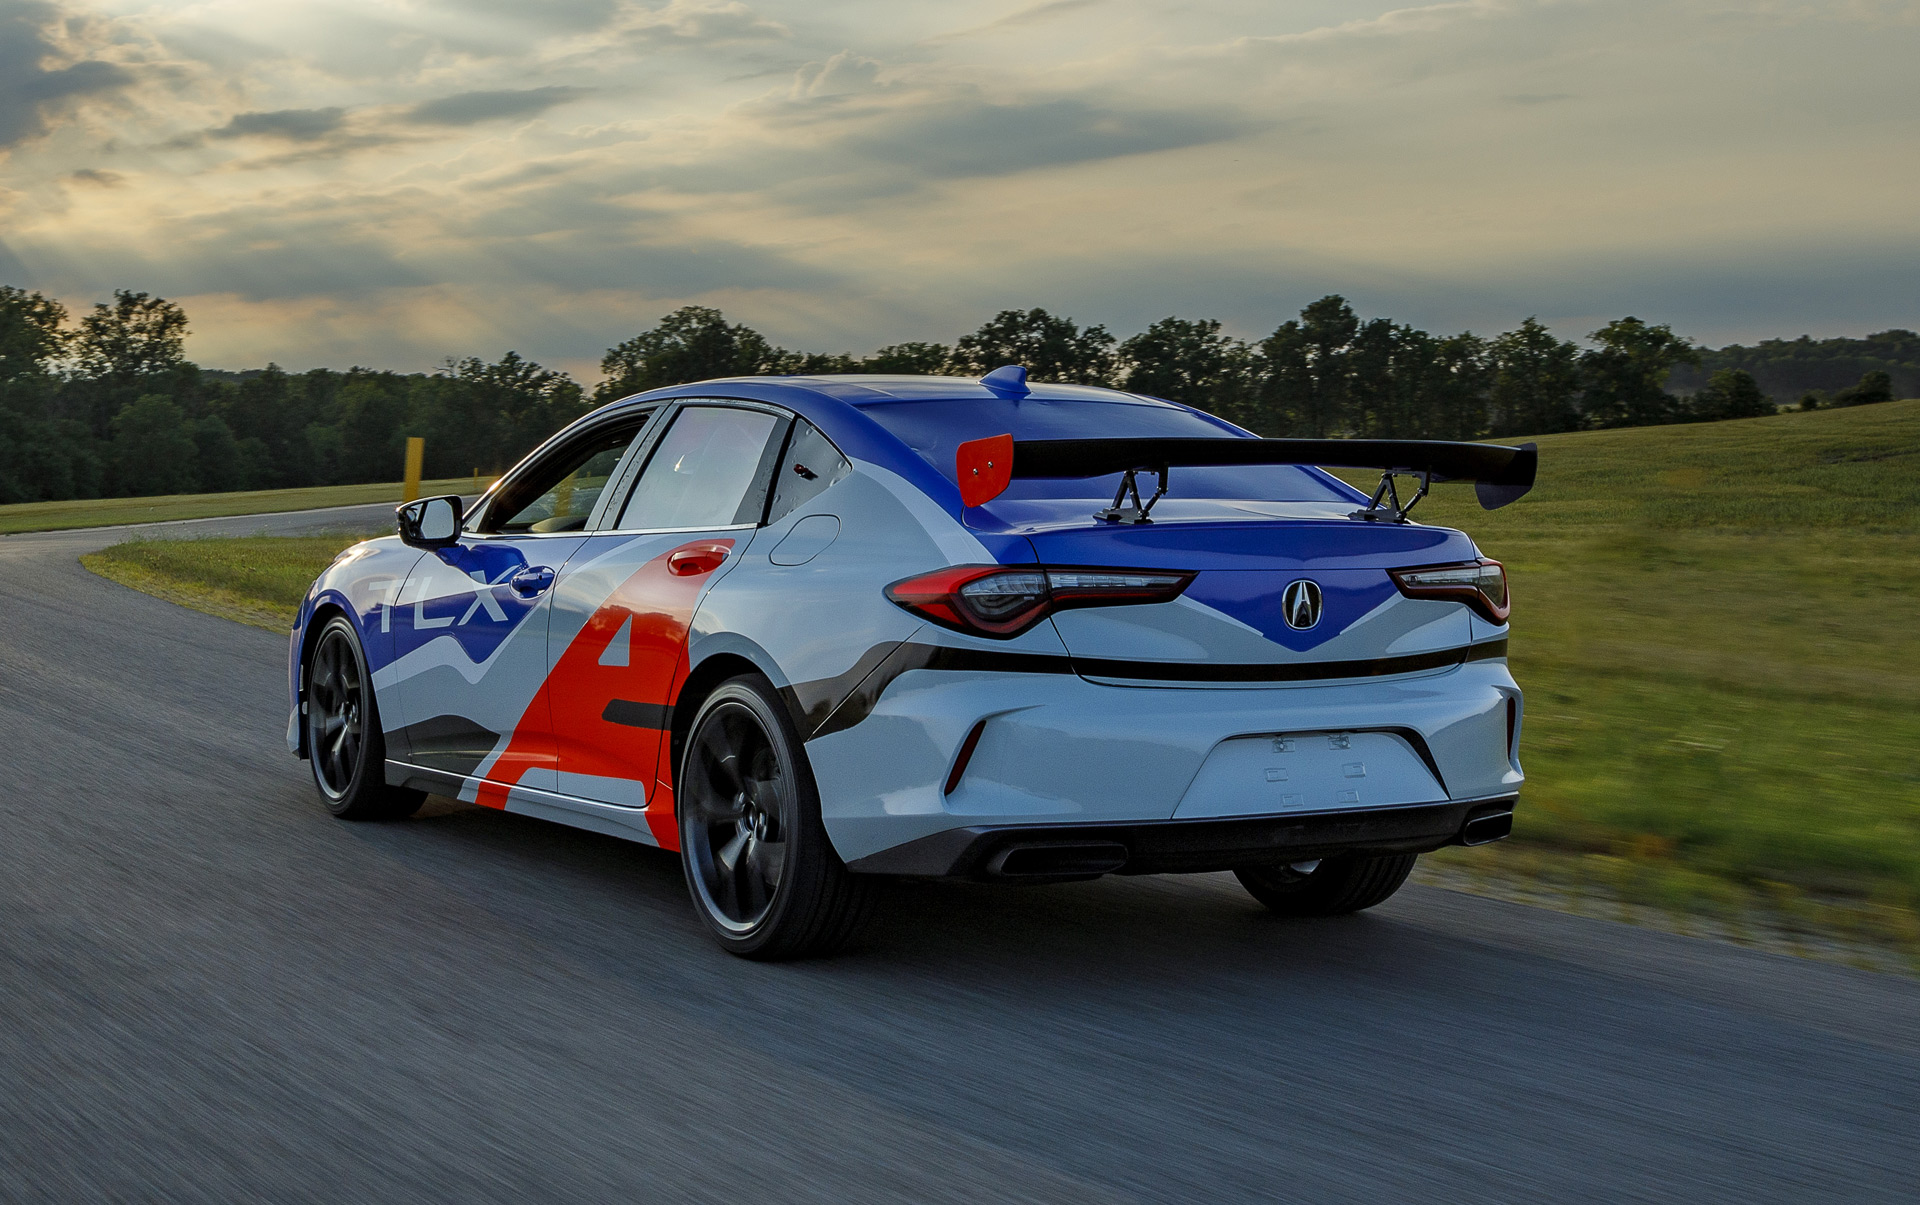 2020 - [Acura] TLX - Page 2 2021-acura-tlx-race-car-to-tackle-2020-pikes-peak-international-hill-climb_100754381_h